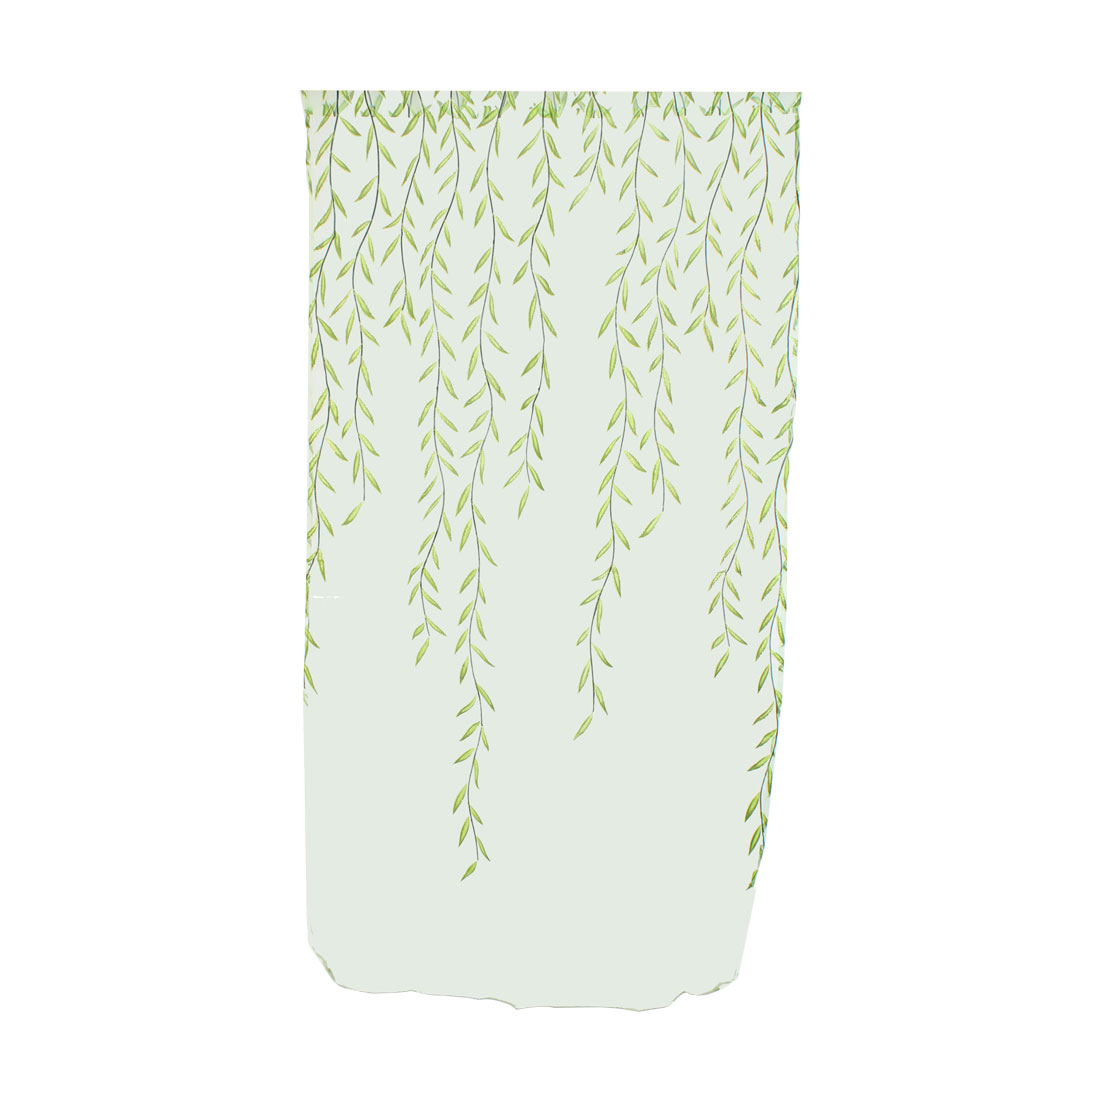 Piccocasa Household Voile Willow Pattern Window Sheer Curtain Green 100 x 200cm